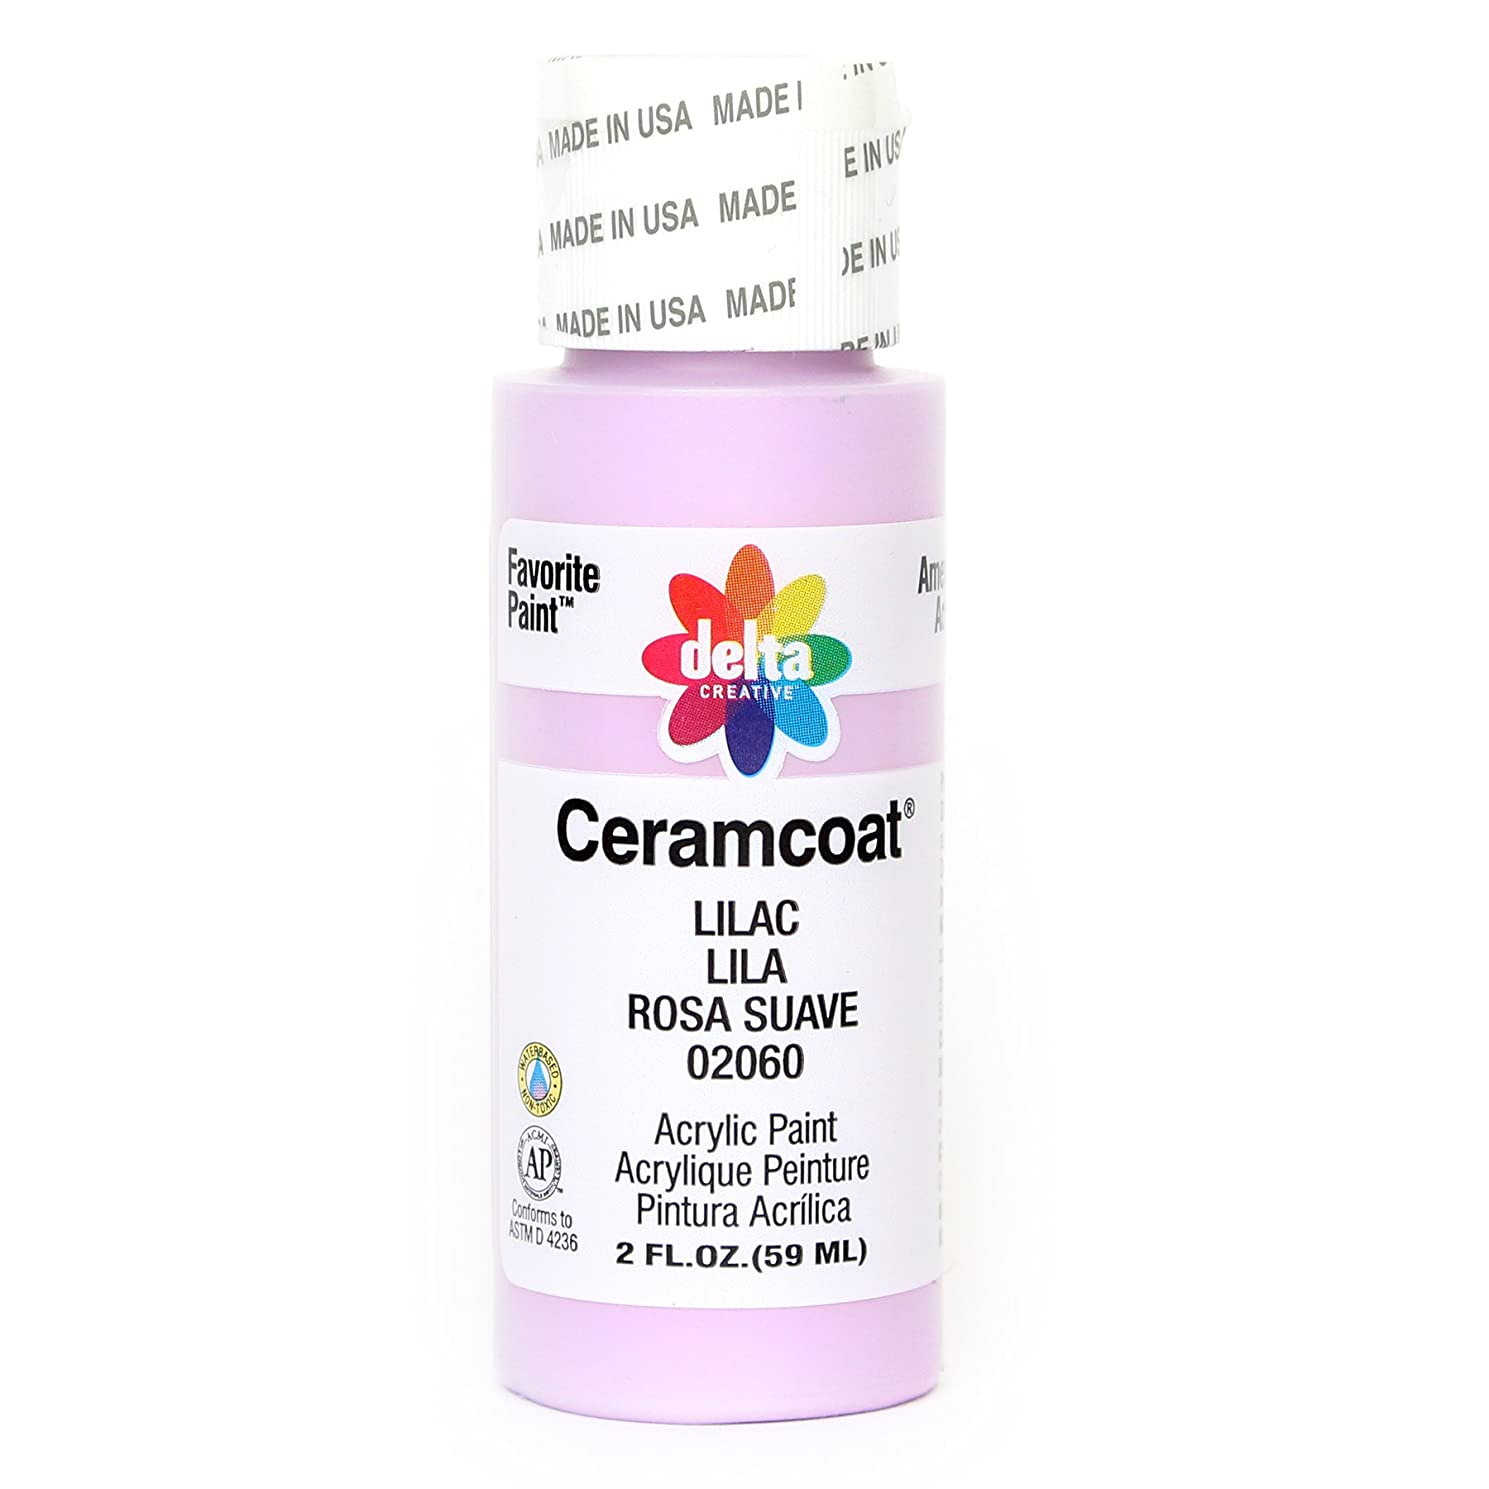 Delta Creative Ceramcoat Acrylic Paint in Assorted Colors (2 oz), 2060, Lilac